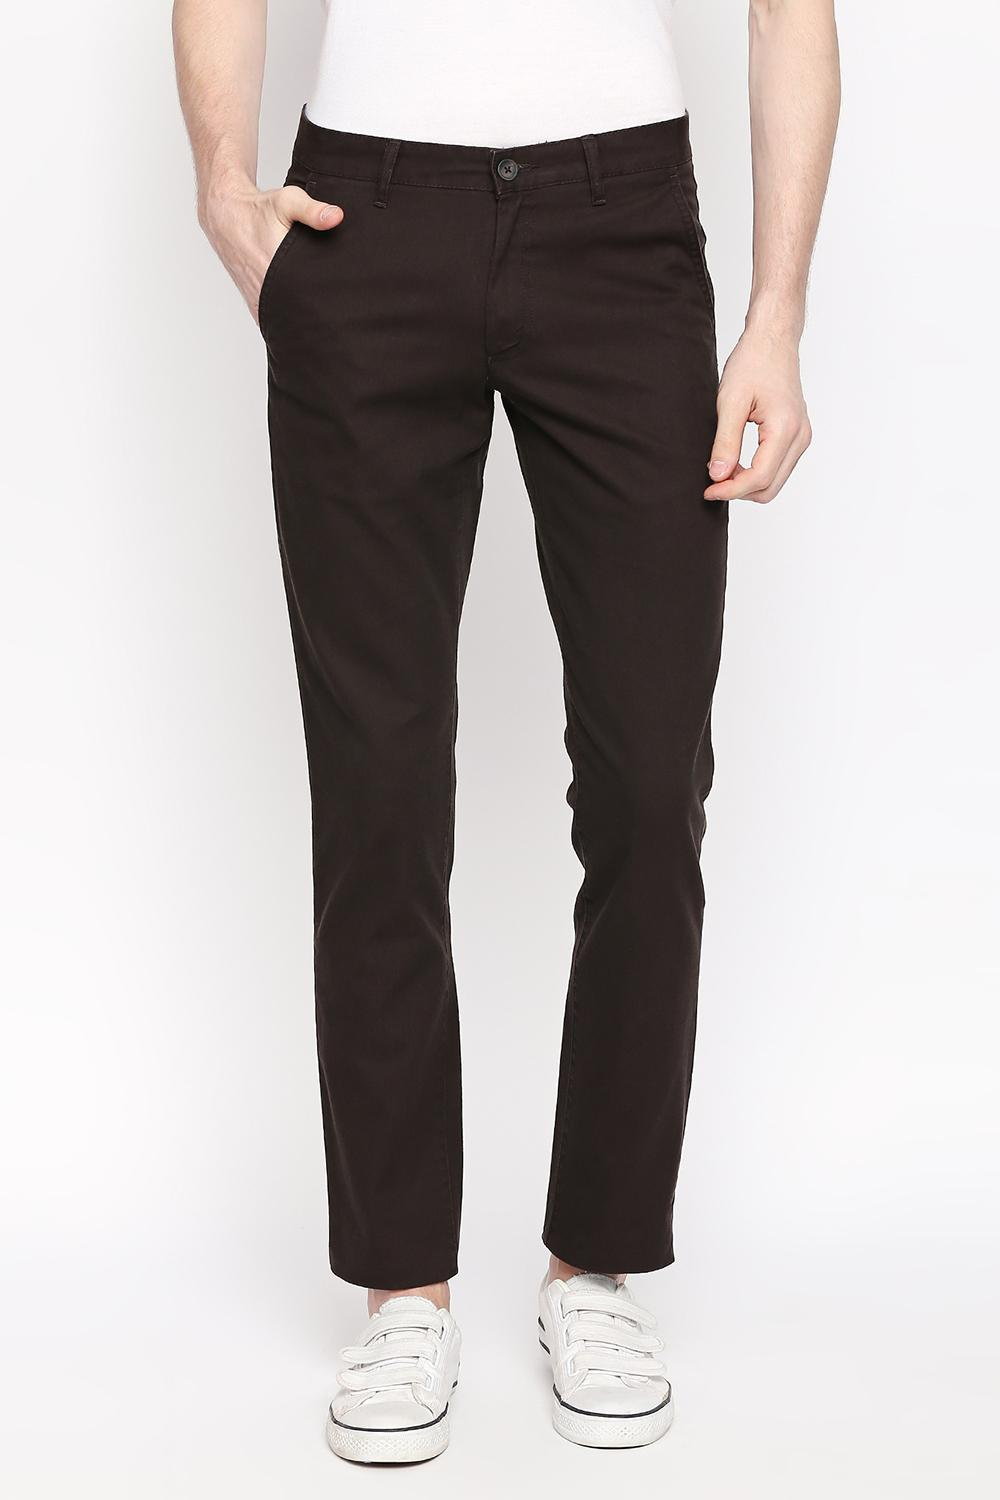 ce8d10e0a81 Buy Mens Trousers and Chinos Online in India